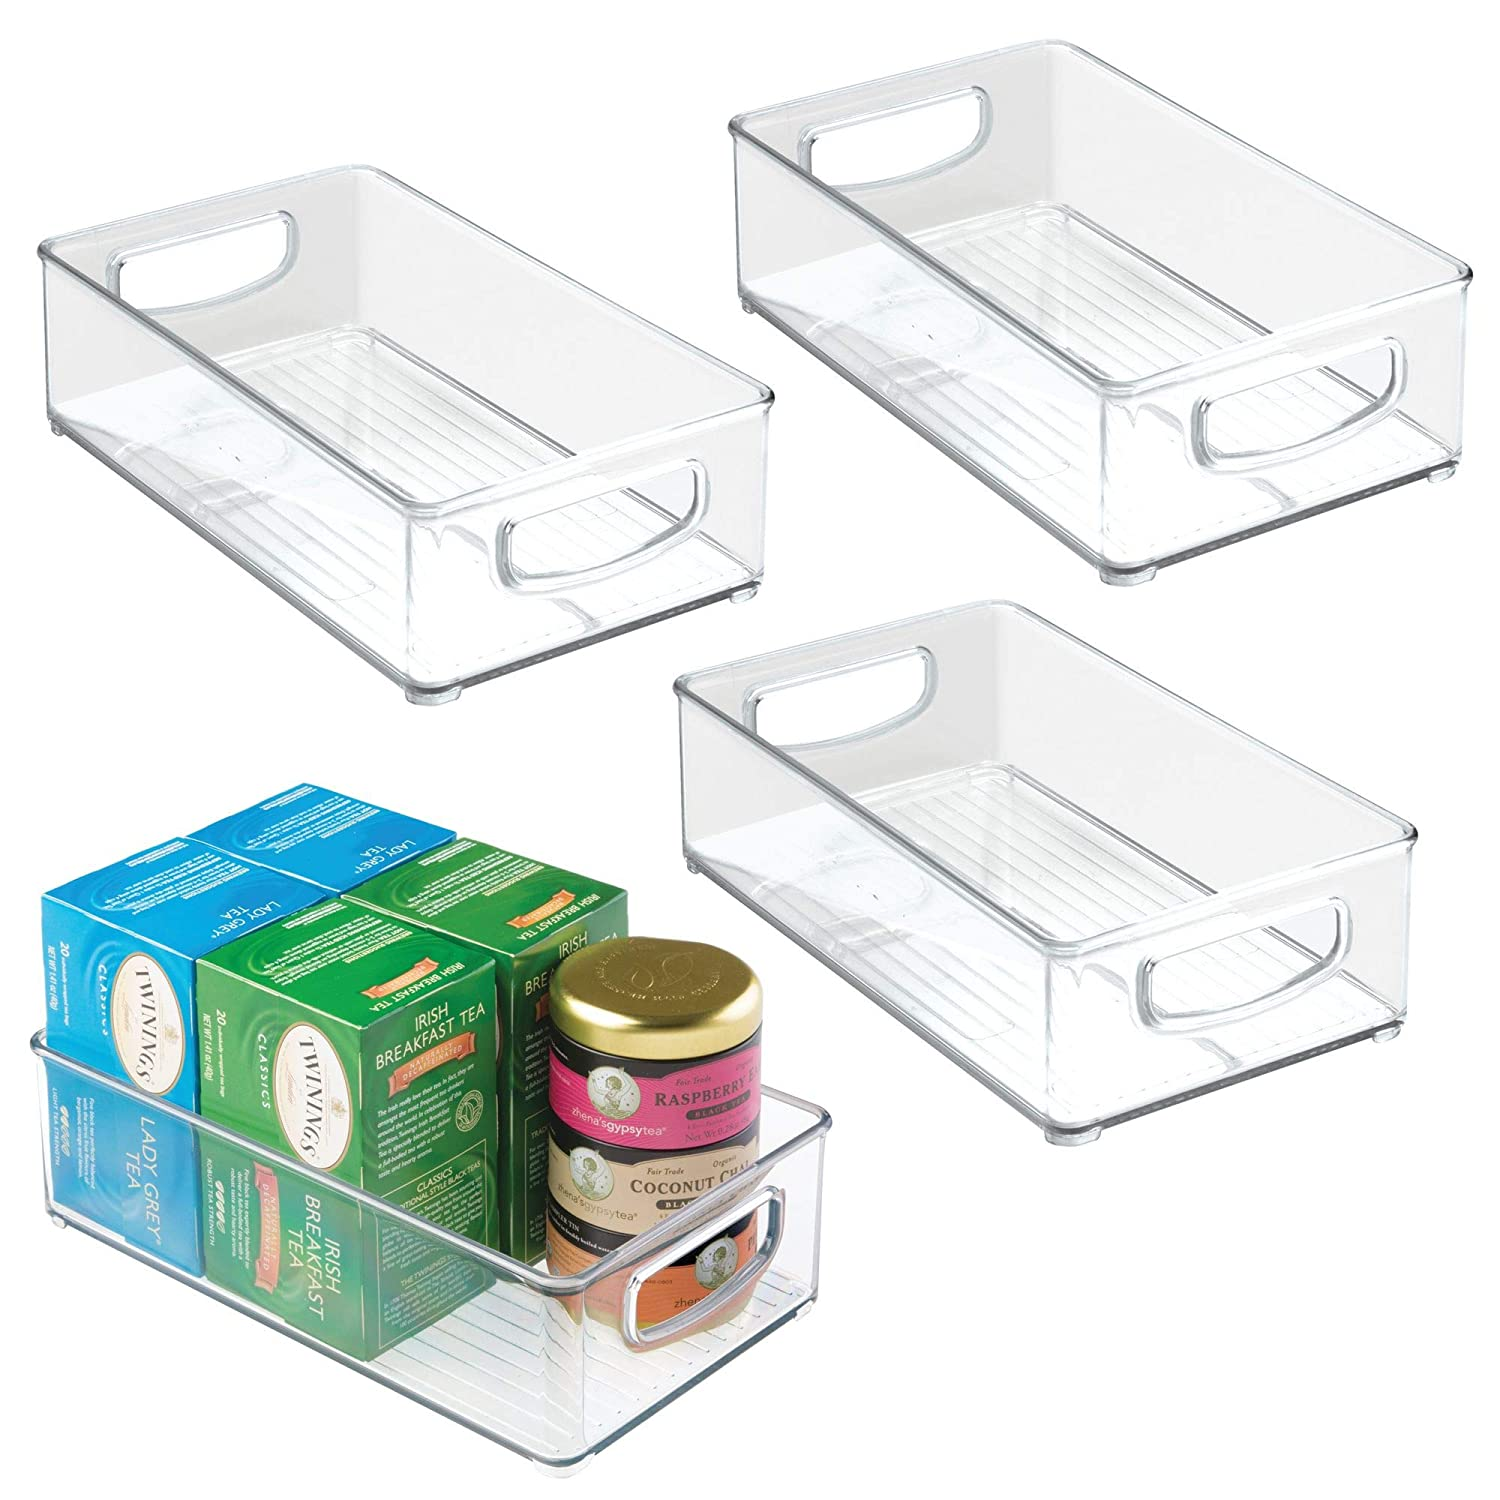 Kitchen Cabinet and Pantry Storage Organizer Bins - Pack of 4, Shallow, Clear